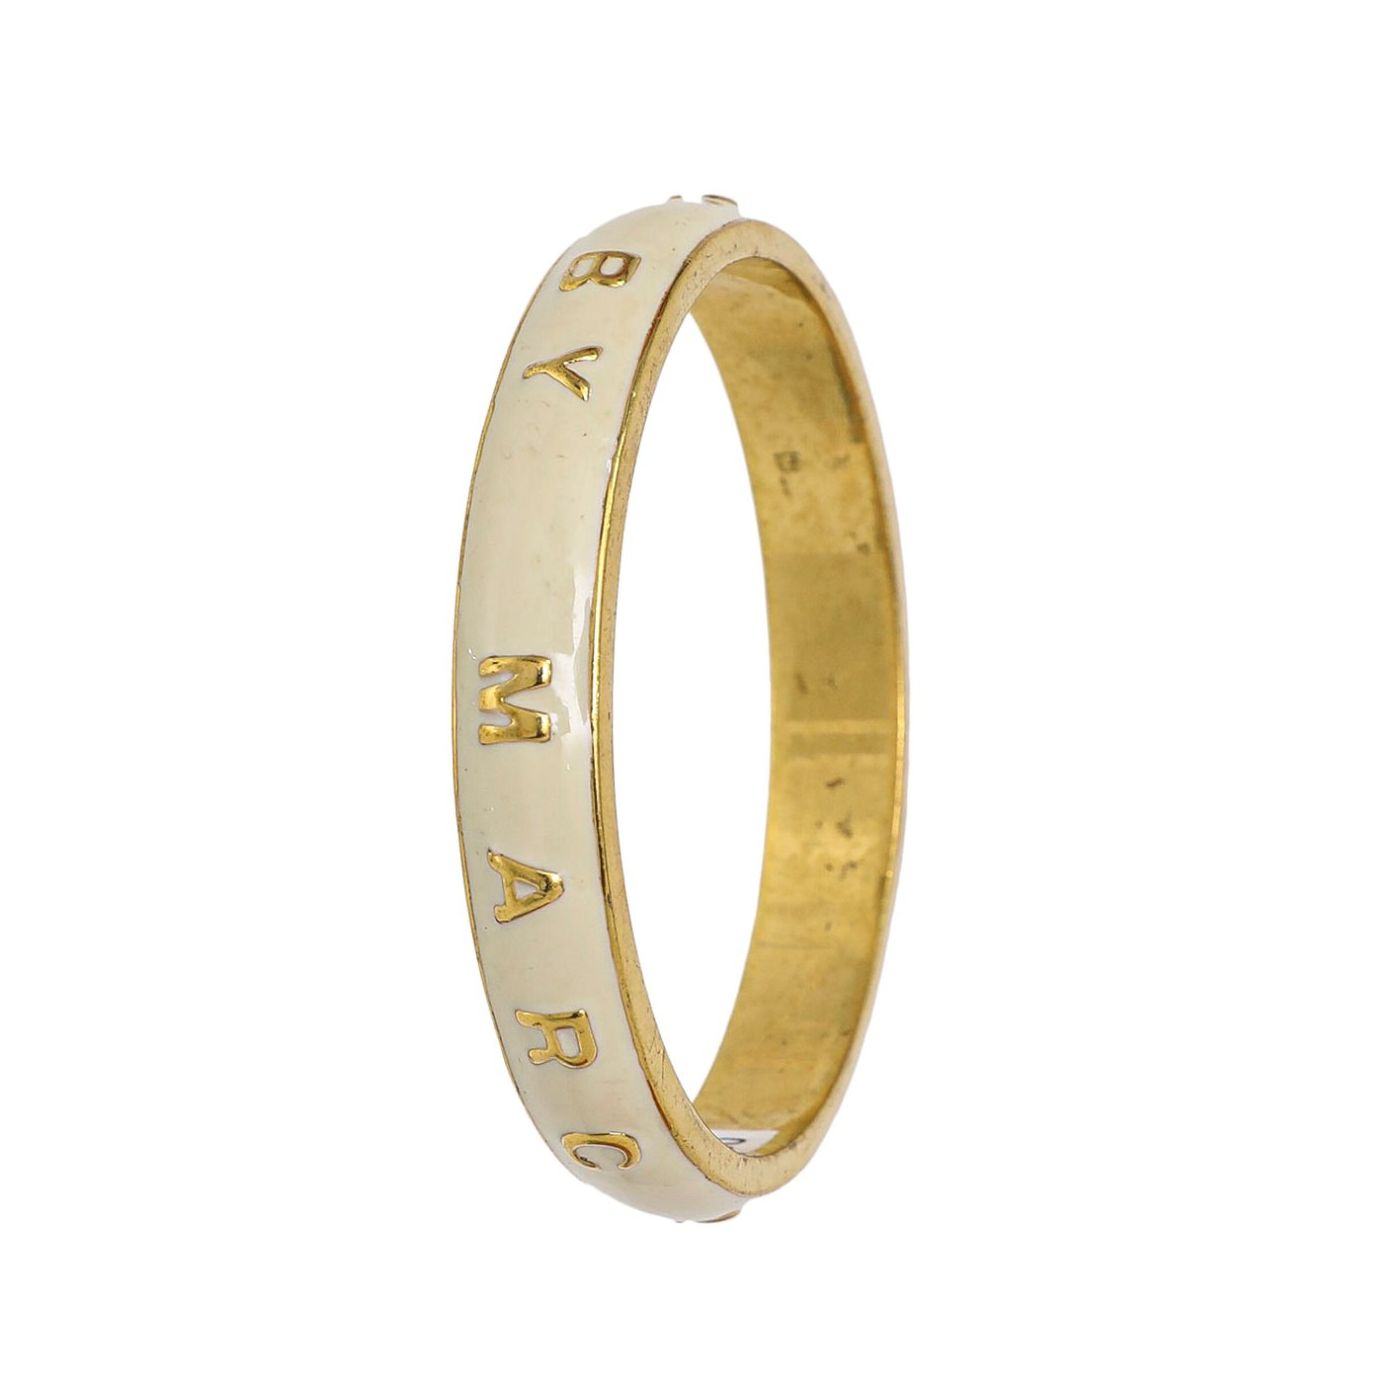 Marc Jacobs Bicolor Signature Name Bangle